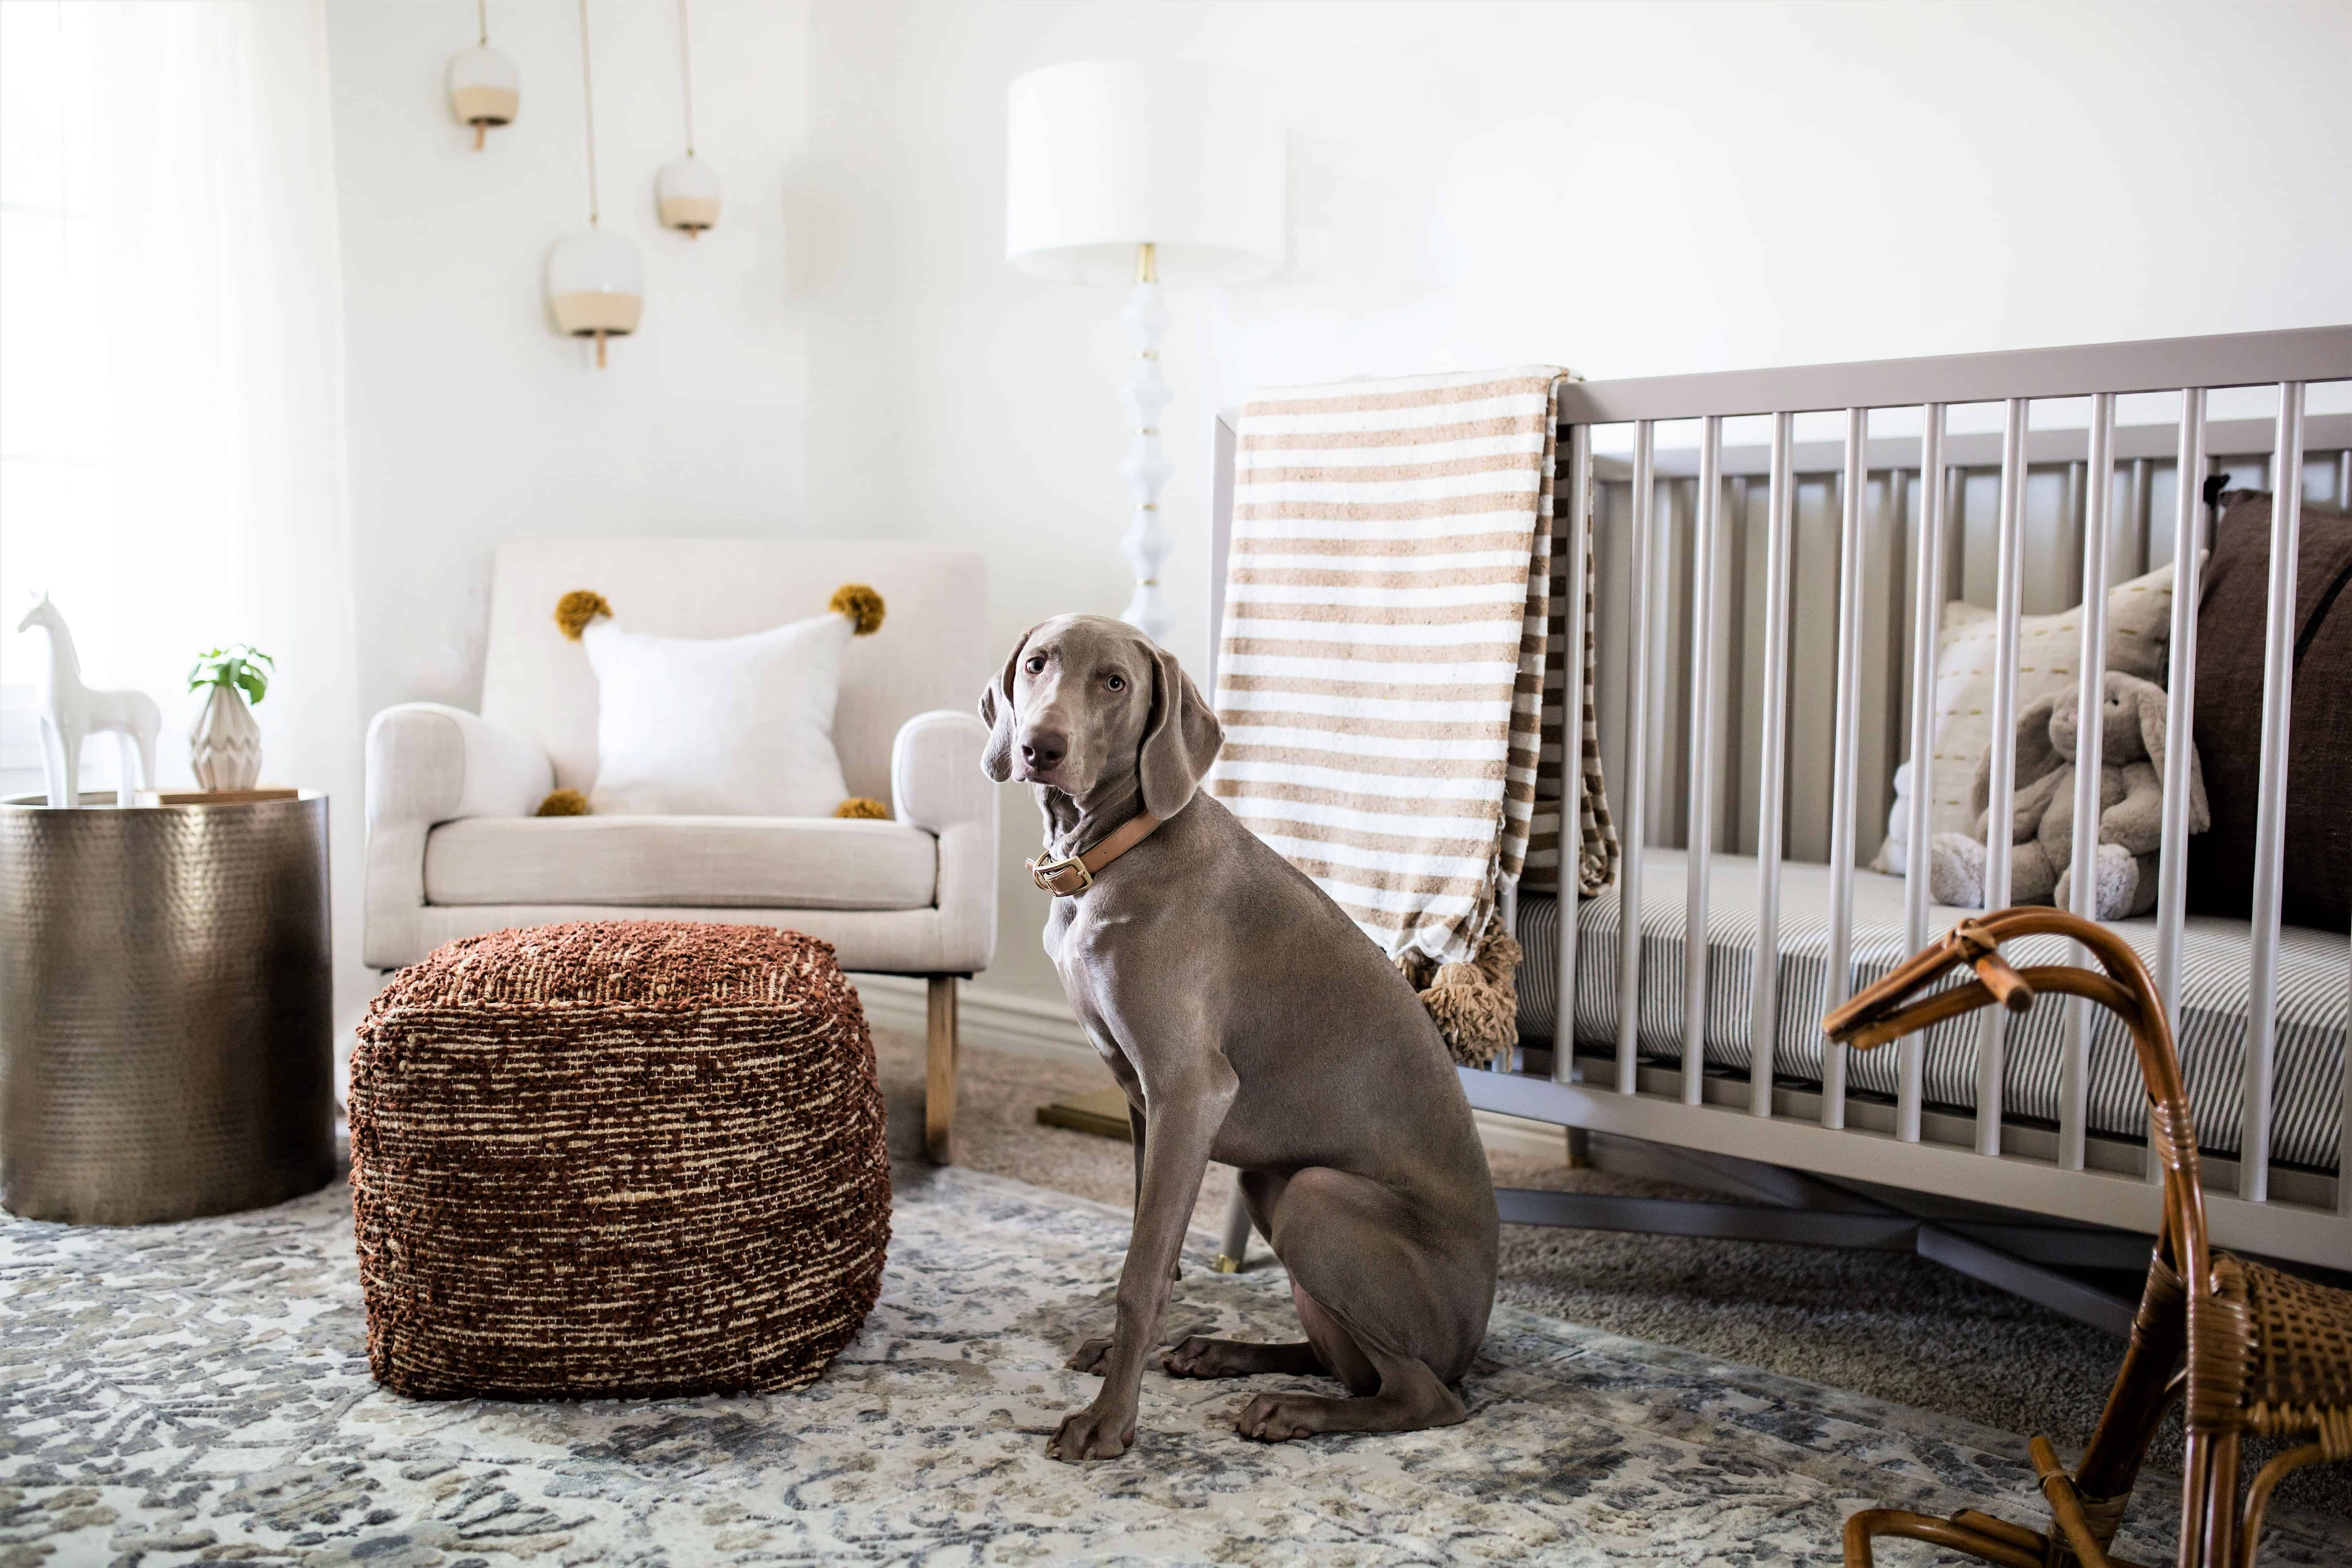 Gray Weimaraner sitting in front of gray crib with yellow striped blanket in minimal nursery designed with heart.